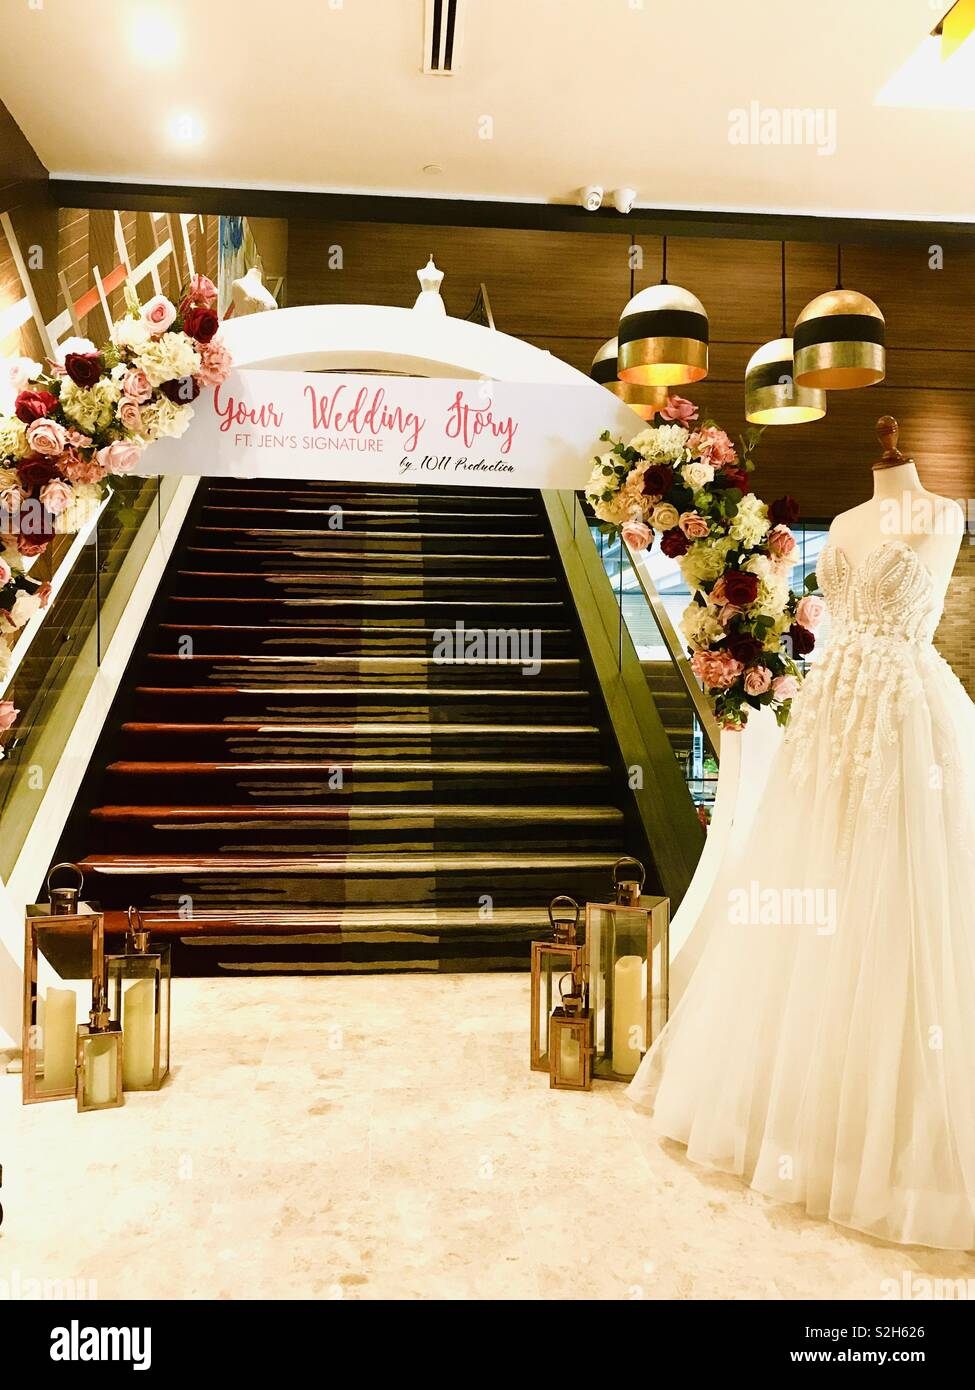 Wedding Staircase Flowers Stock Photos Wedding Staircase Flowers